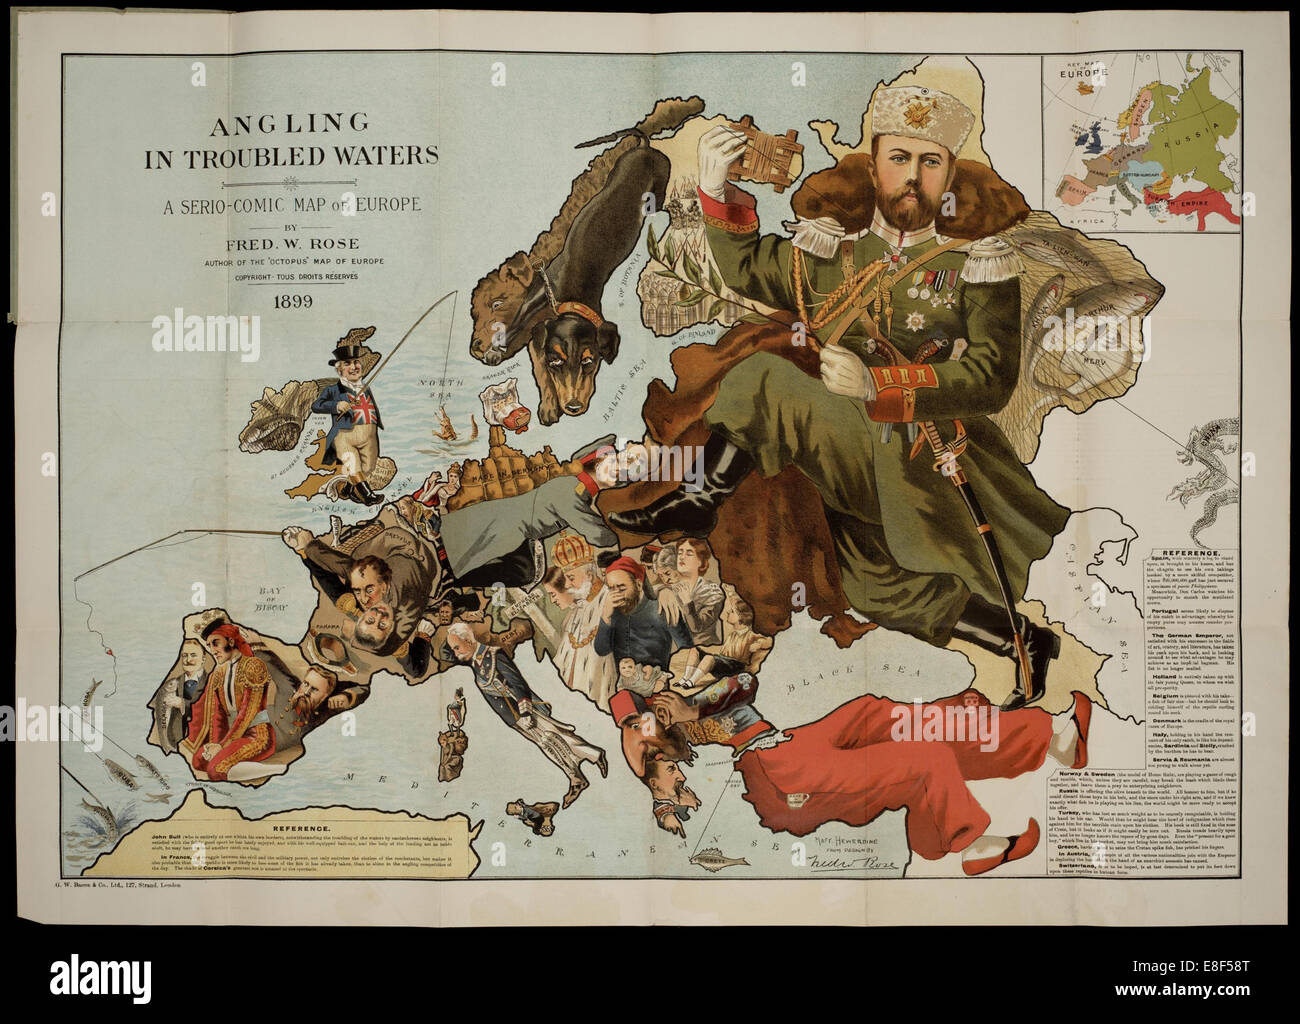 Angling in Troubled Waters. A Serio-Comic Map of Europe. Artist: Fred W. Rose (active End of 19th cen.) - Stock Image